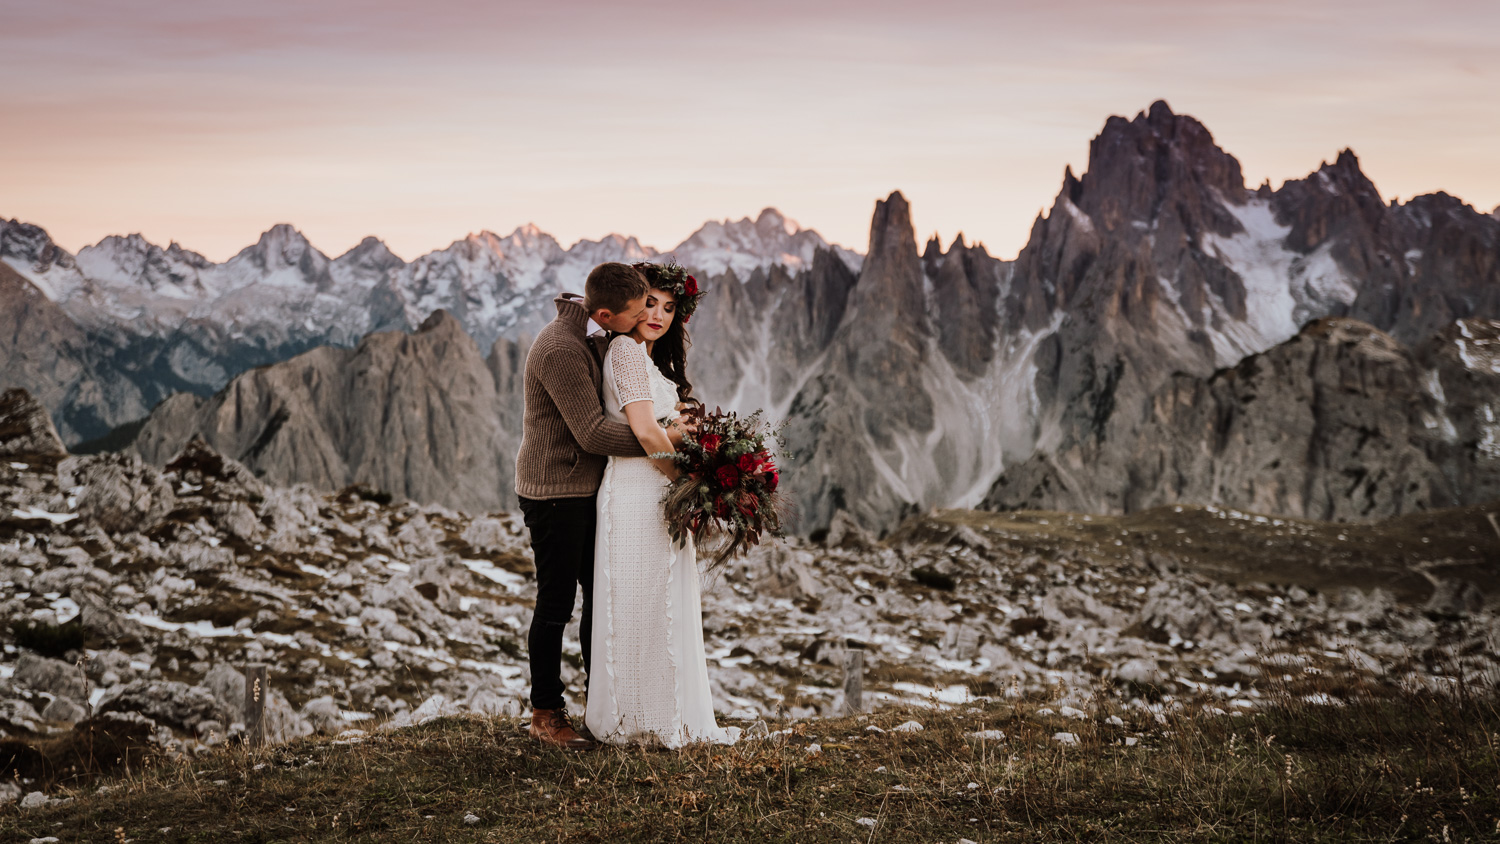 Dolomites Wedding Photographer 46